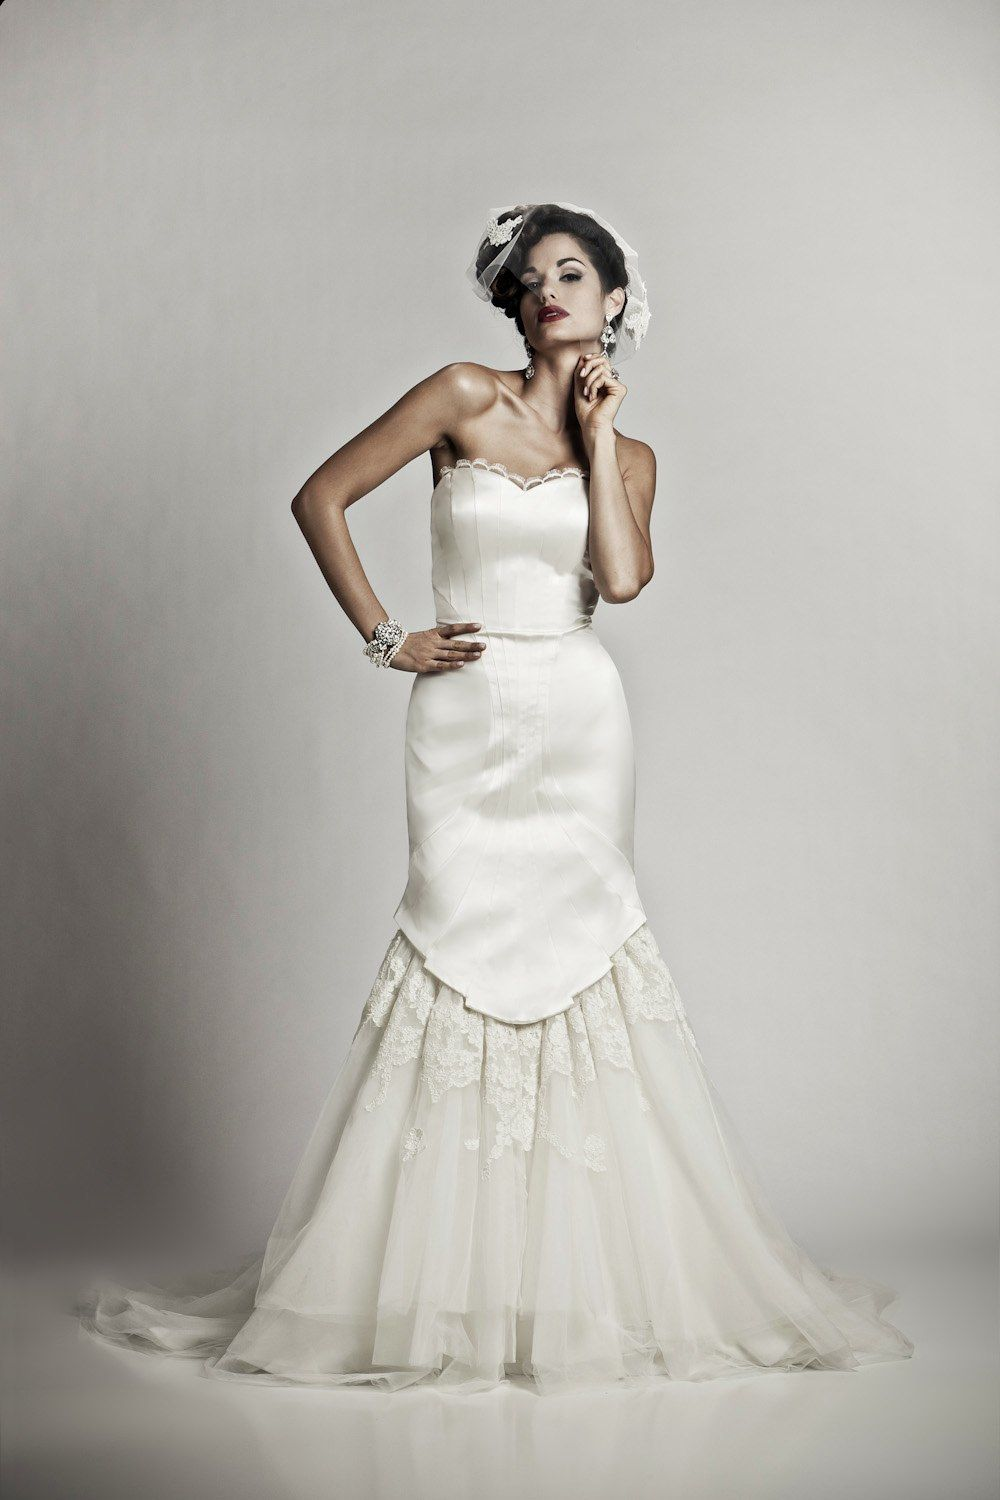 Friday favouritesuvintage inspired wedding dresses pinterest